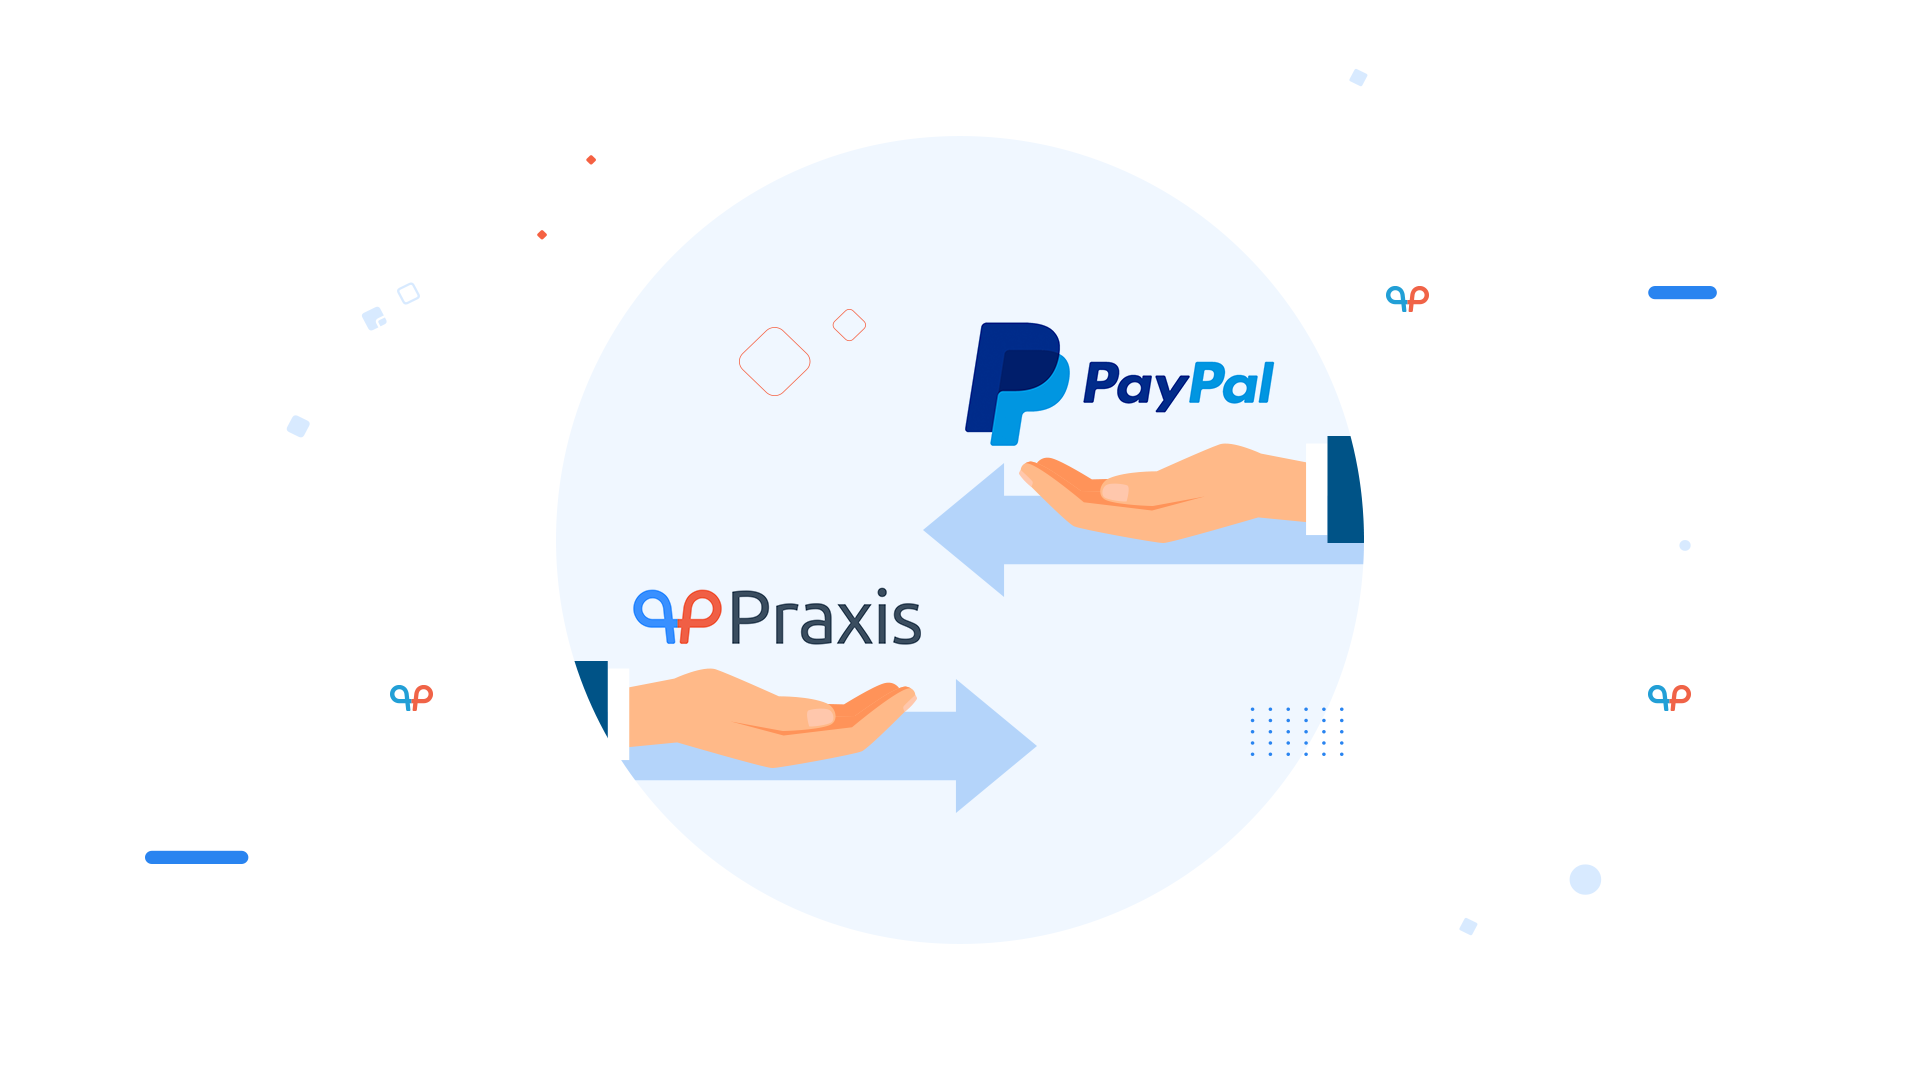 Paypal and Praxis